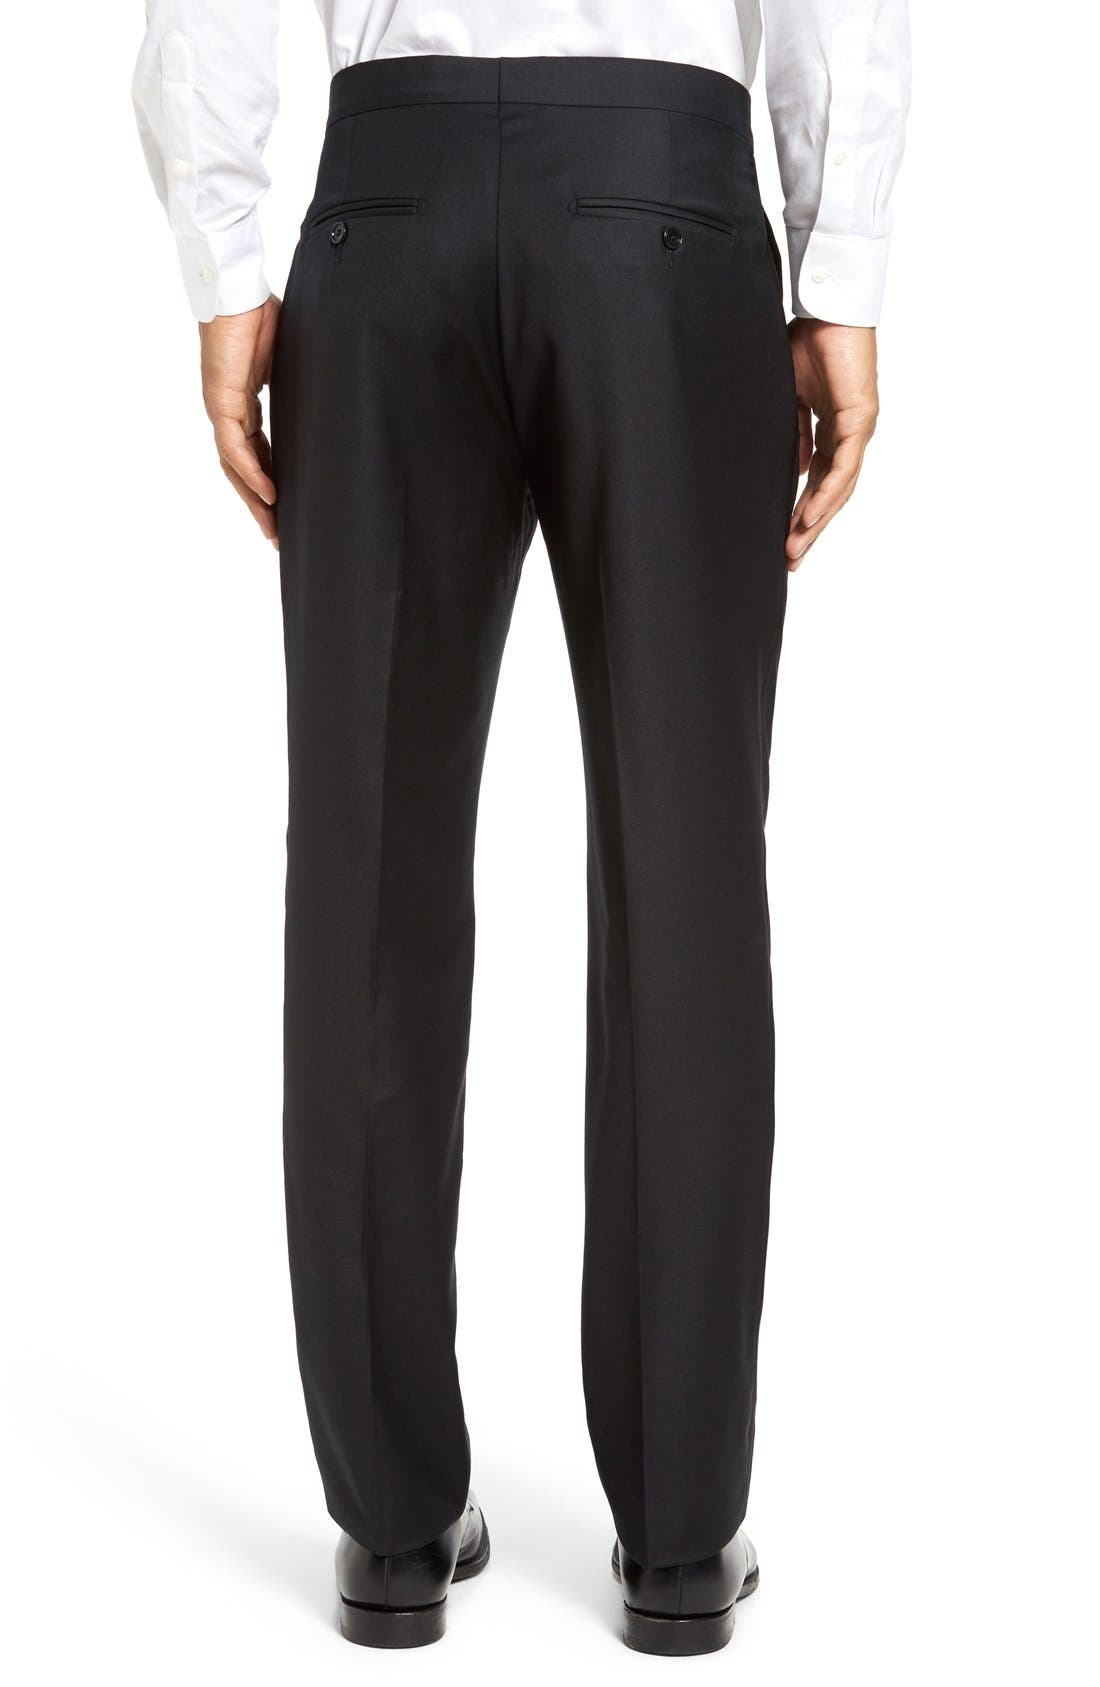 Dagger Flat Front Formal Wool Trousers,                             Alternate thumbnail 2, color,                             001